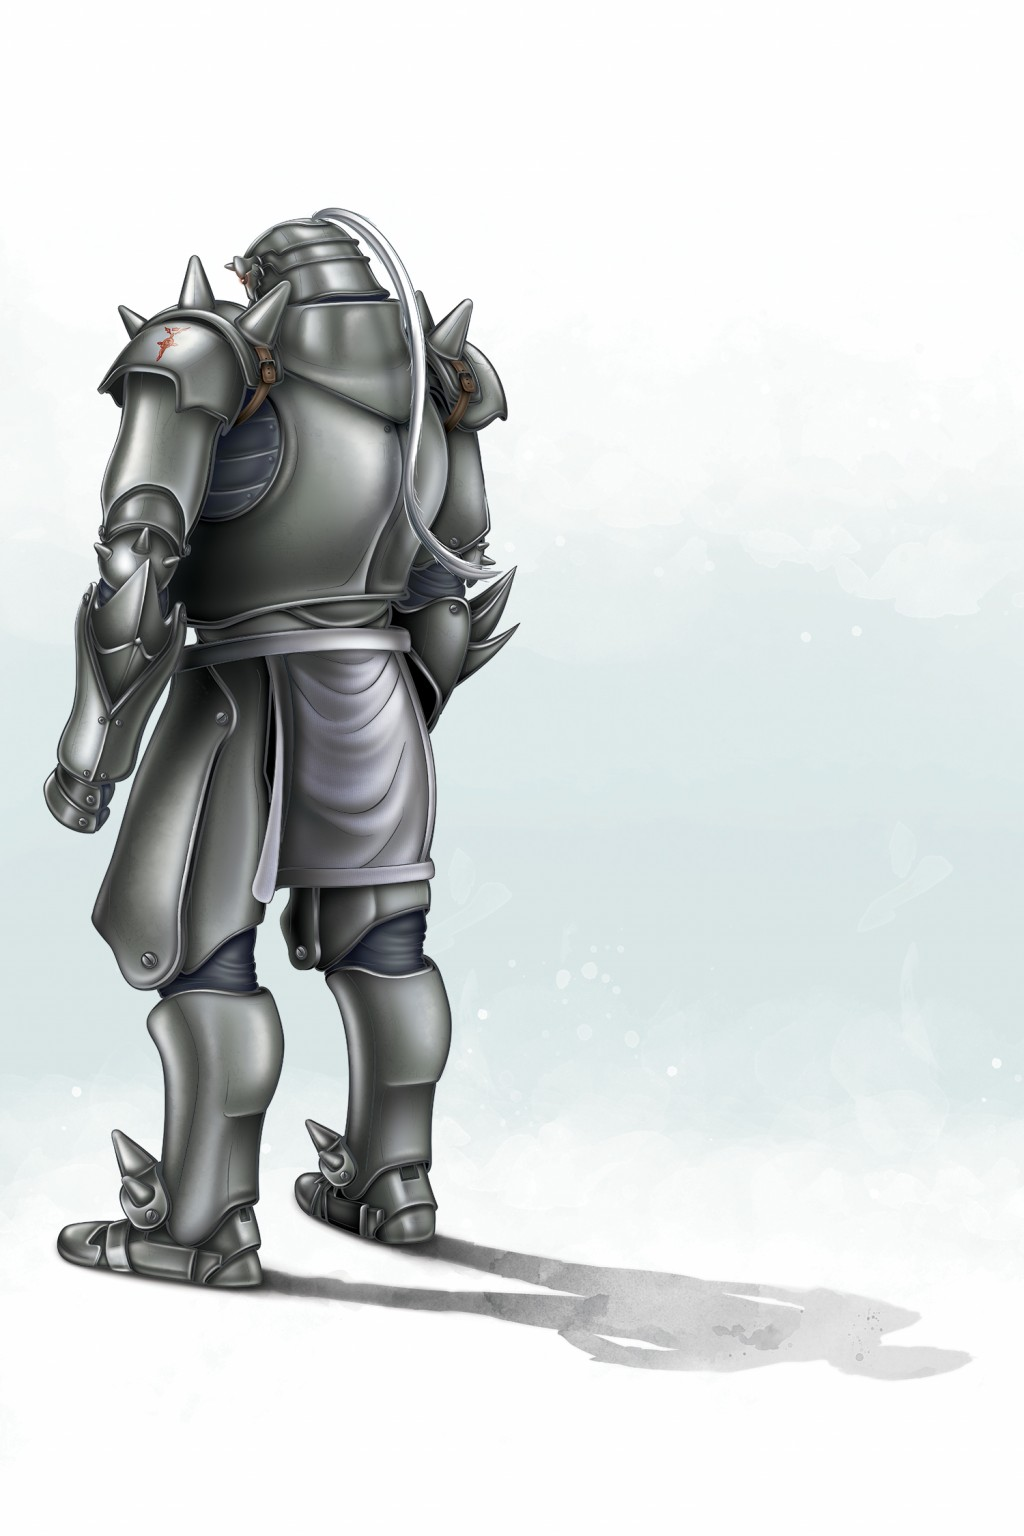 Color Photoshop painting of Alphonse Elric from Full Metal Alchemist. A Suit of Armor on a green background.